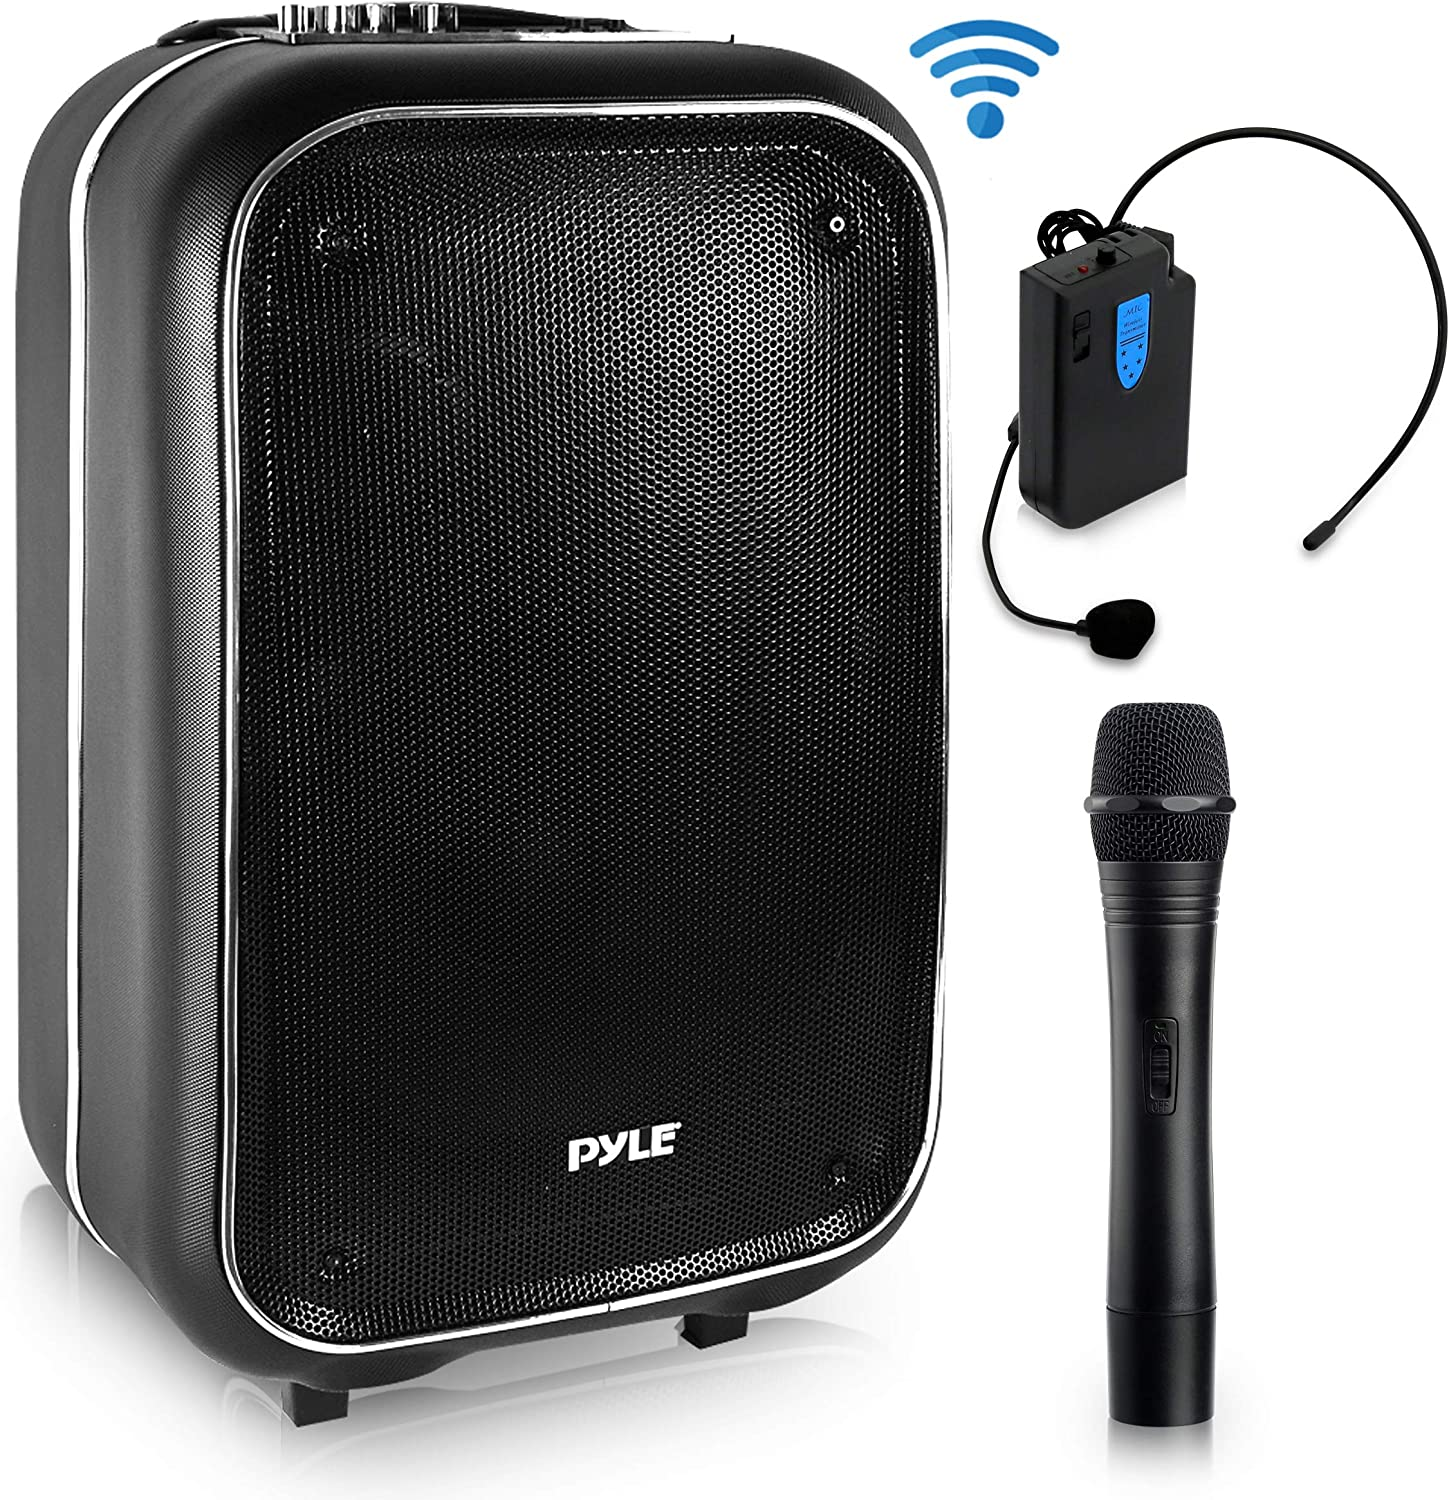 Wireless Portable PA Speaker System 400 W Battery Powered Rechargeable Sound Stereo Speaker and Microphone Set with Bluetooth MP3 USB Micro SD FM Radio AUX For Outdoor DJ Party Pyle PWMA825BT